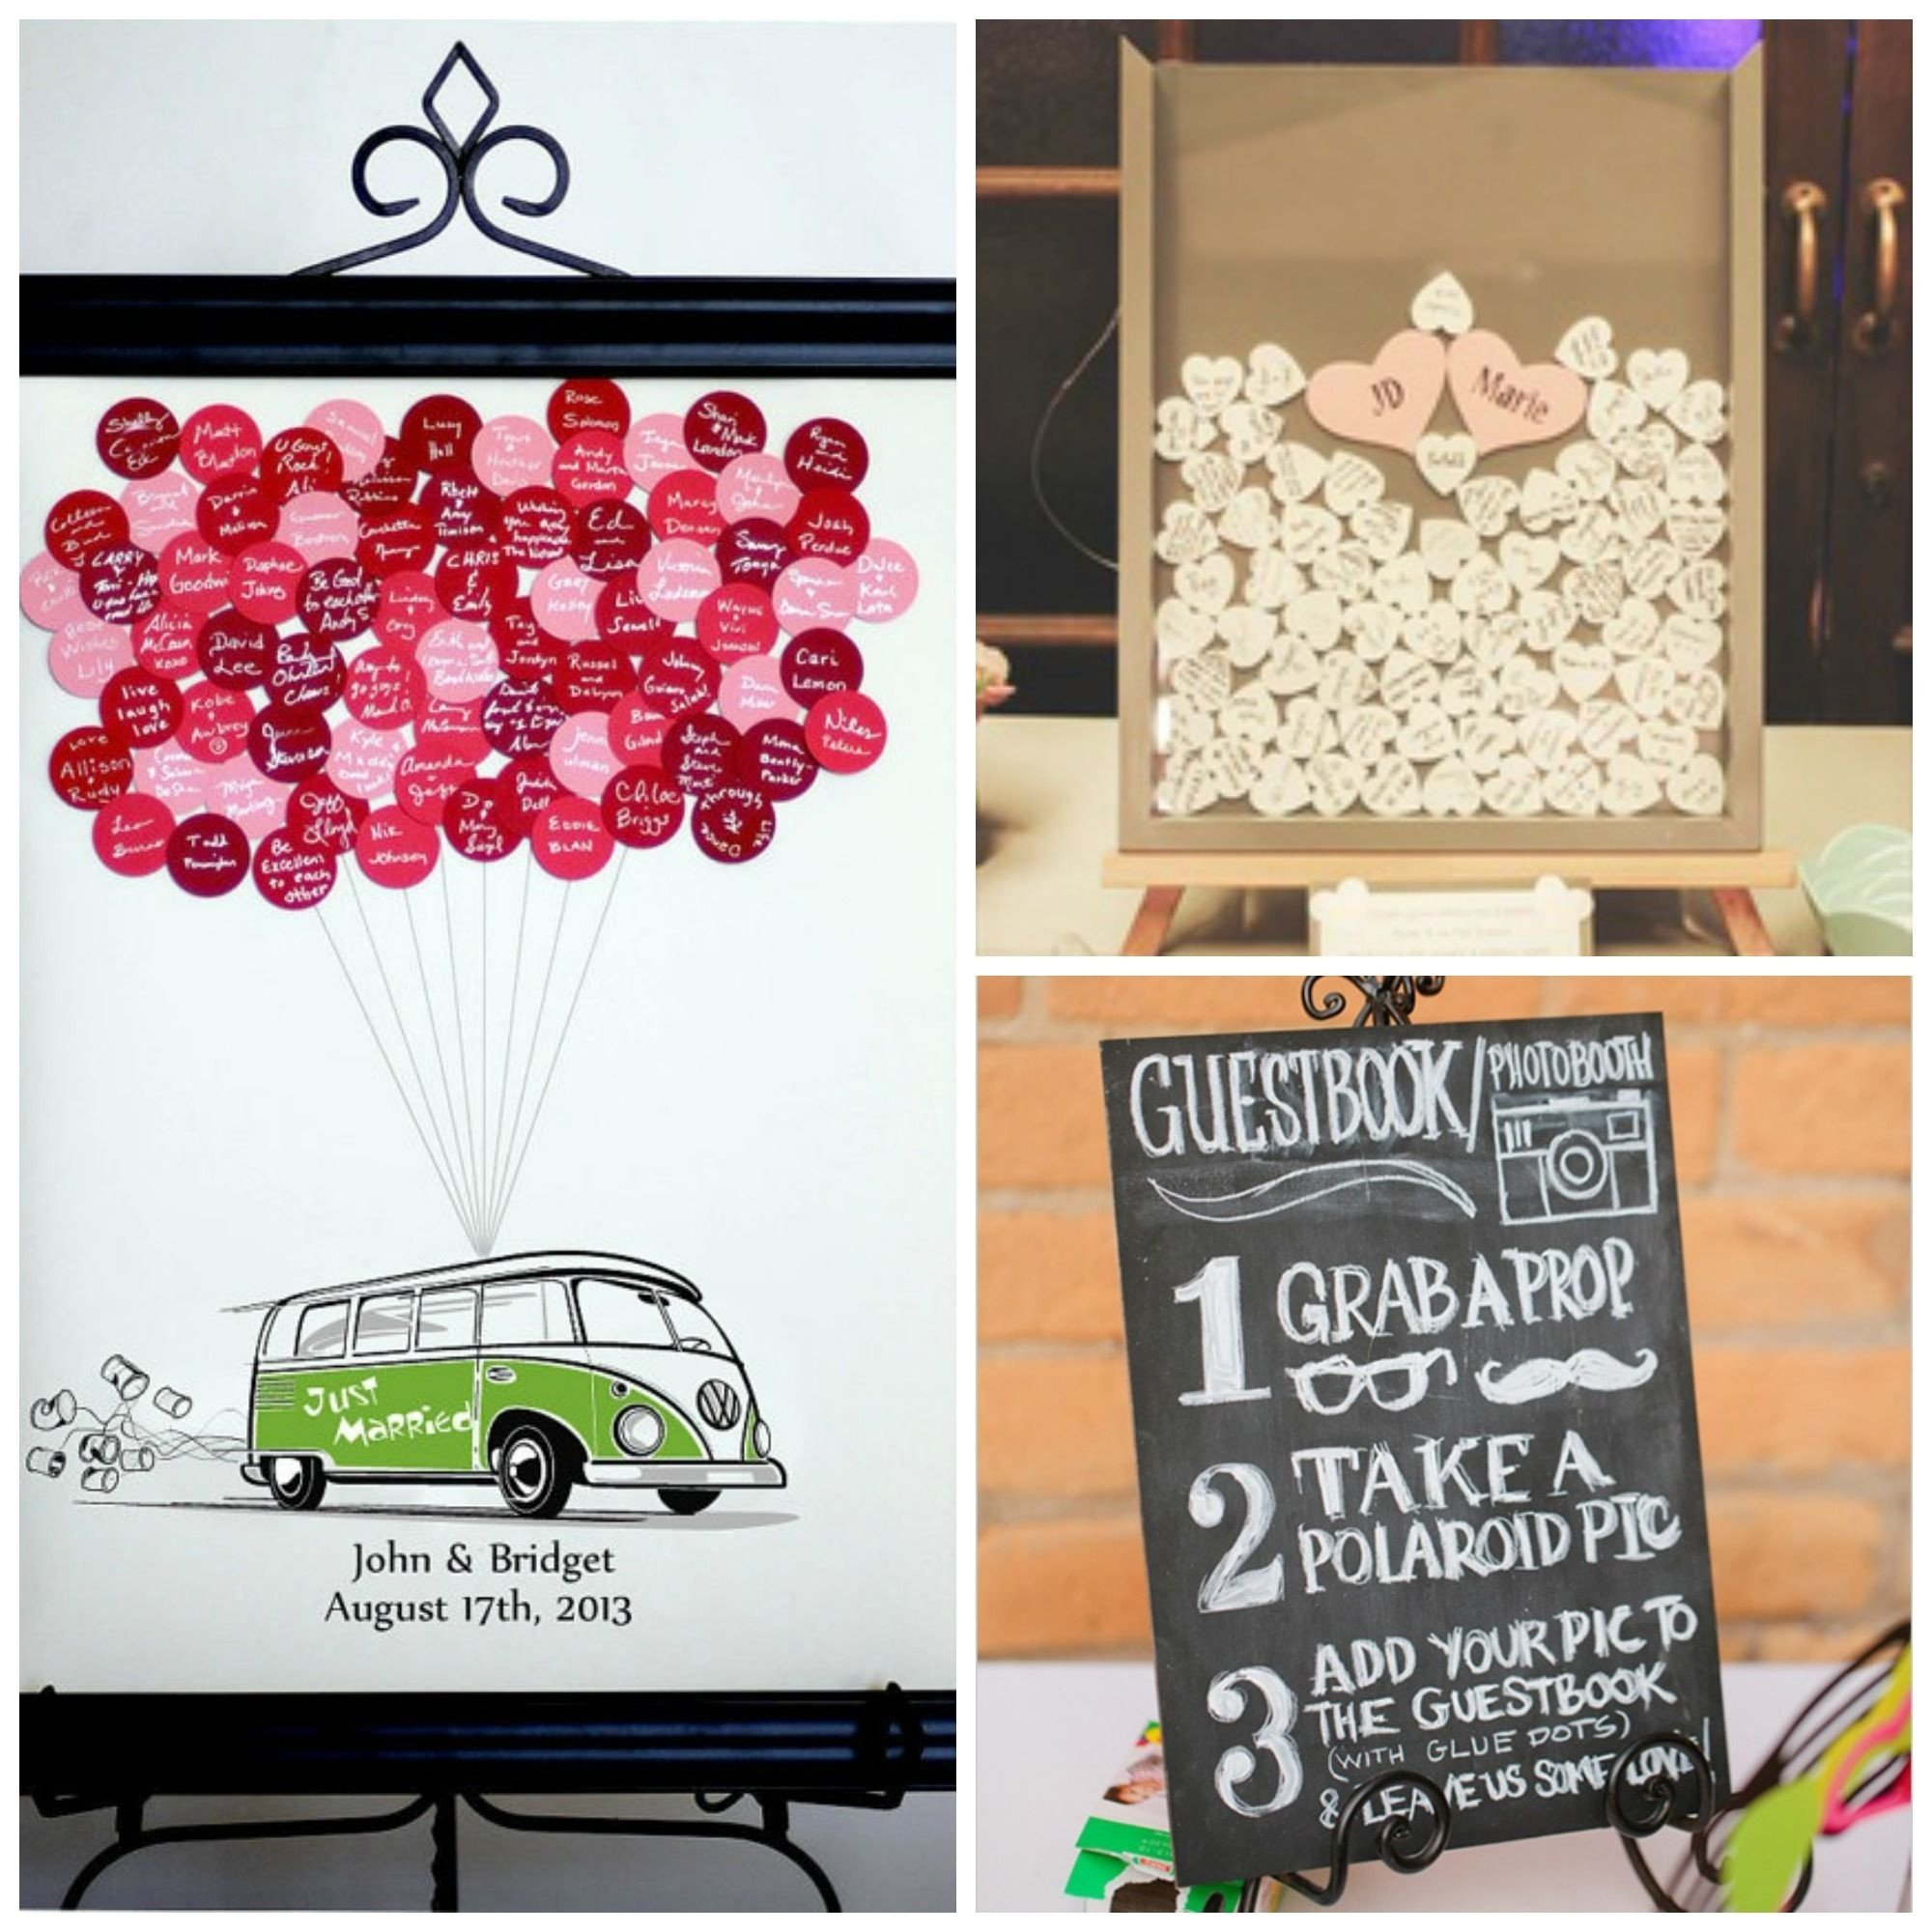 10 Lovely Ideas For Wedding Guest Book creative wedding guest book ideas amazing ideas1 pinterest guestbook 2020